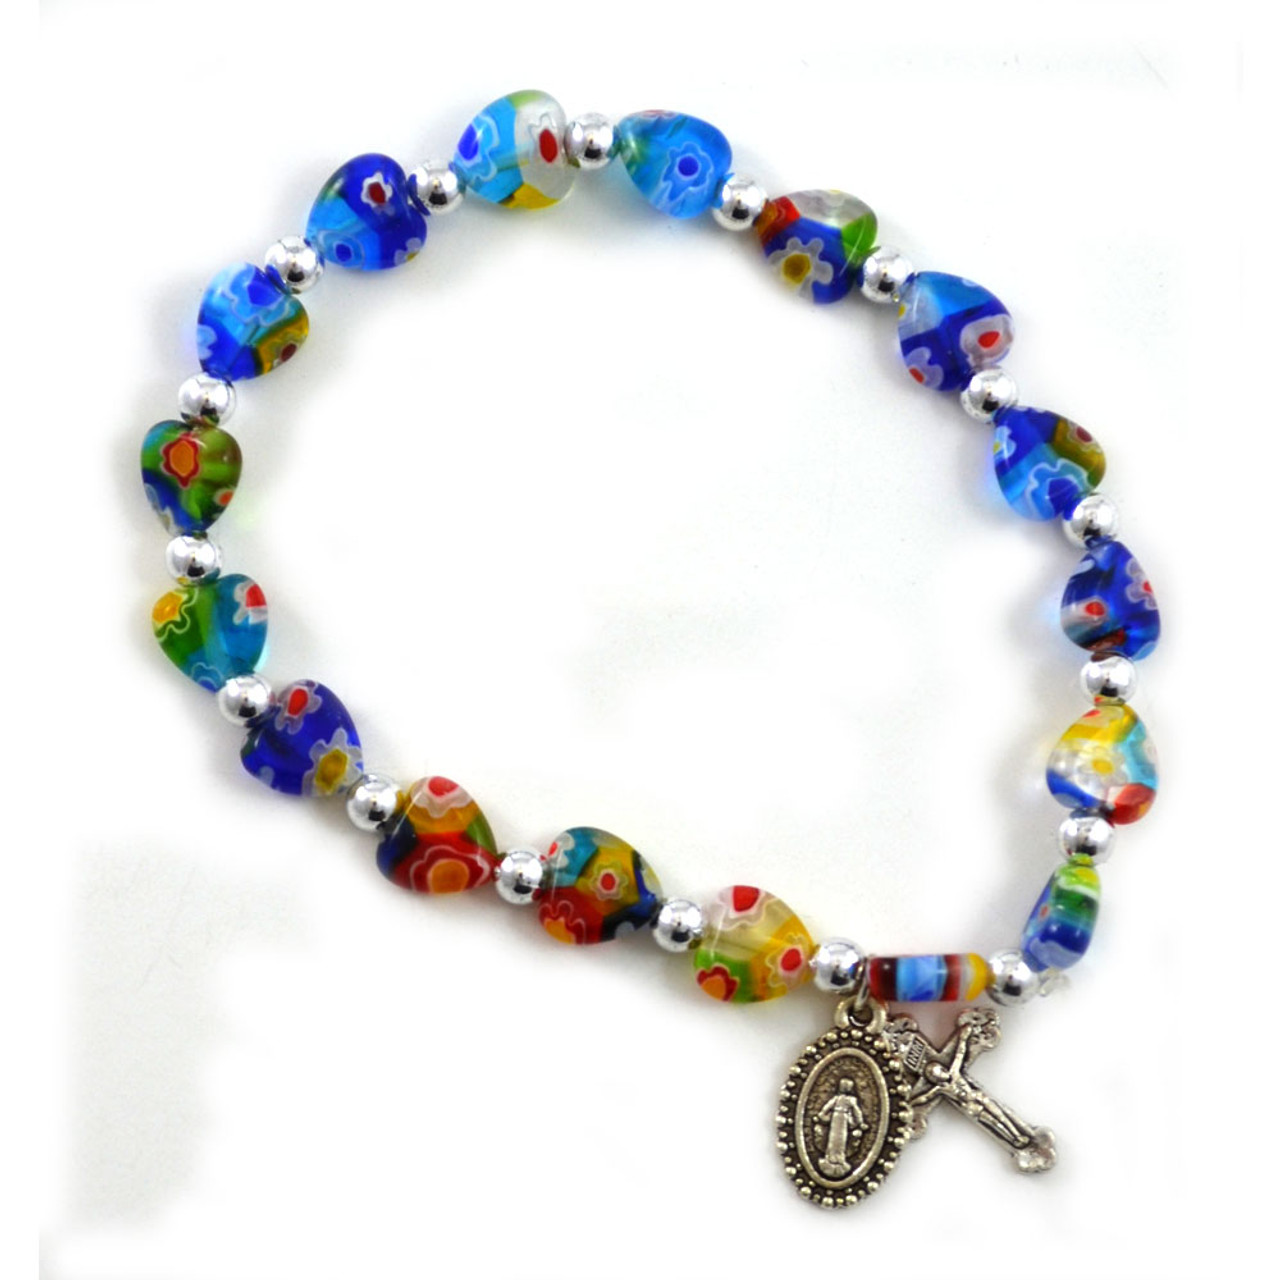 Venetian Style Bracelet with Miraculous Medal and Crucifix Charms